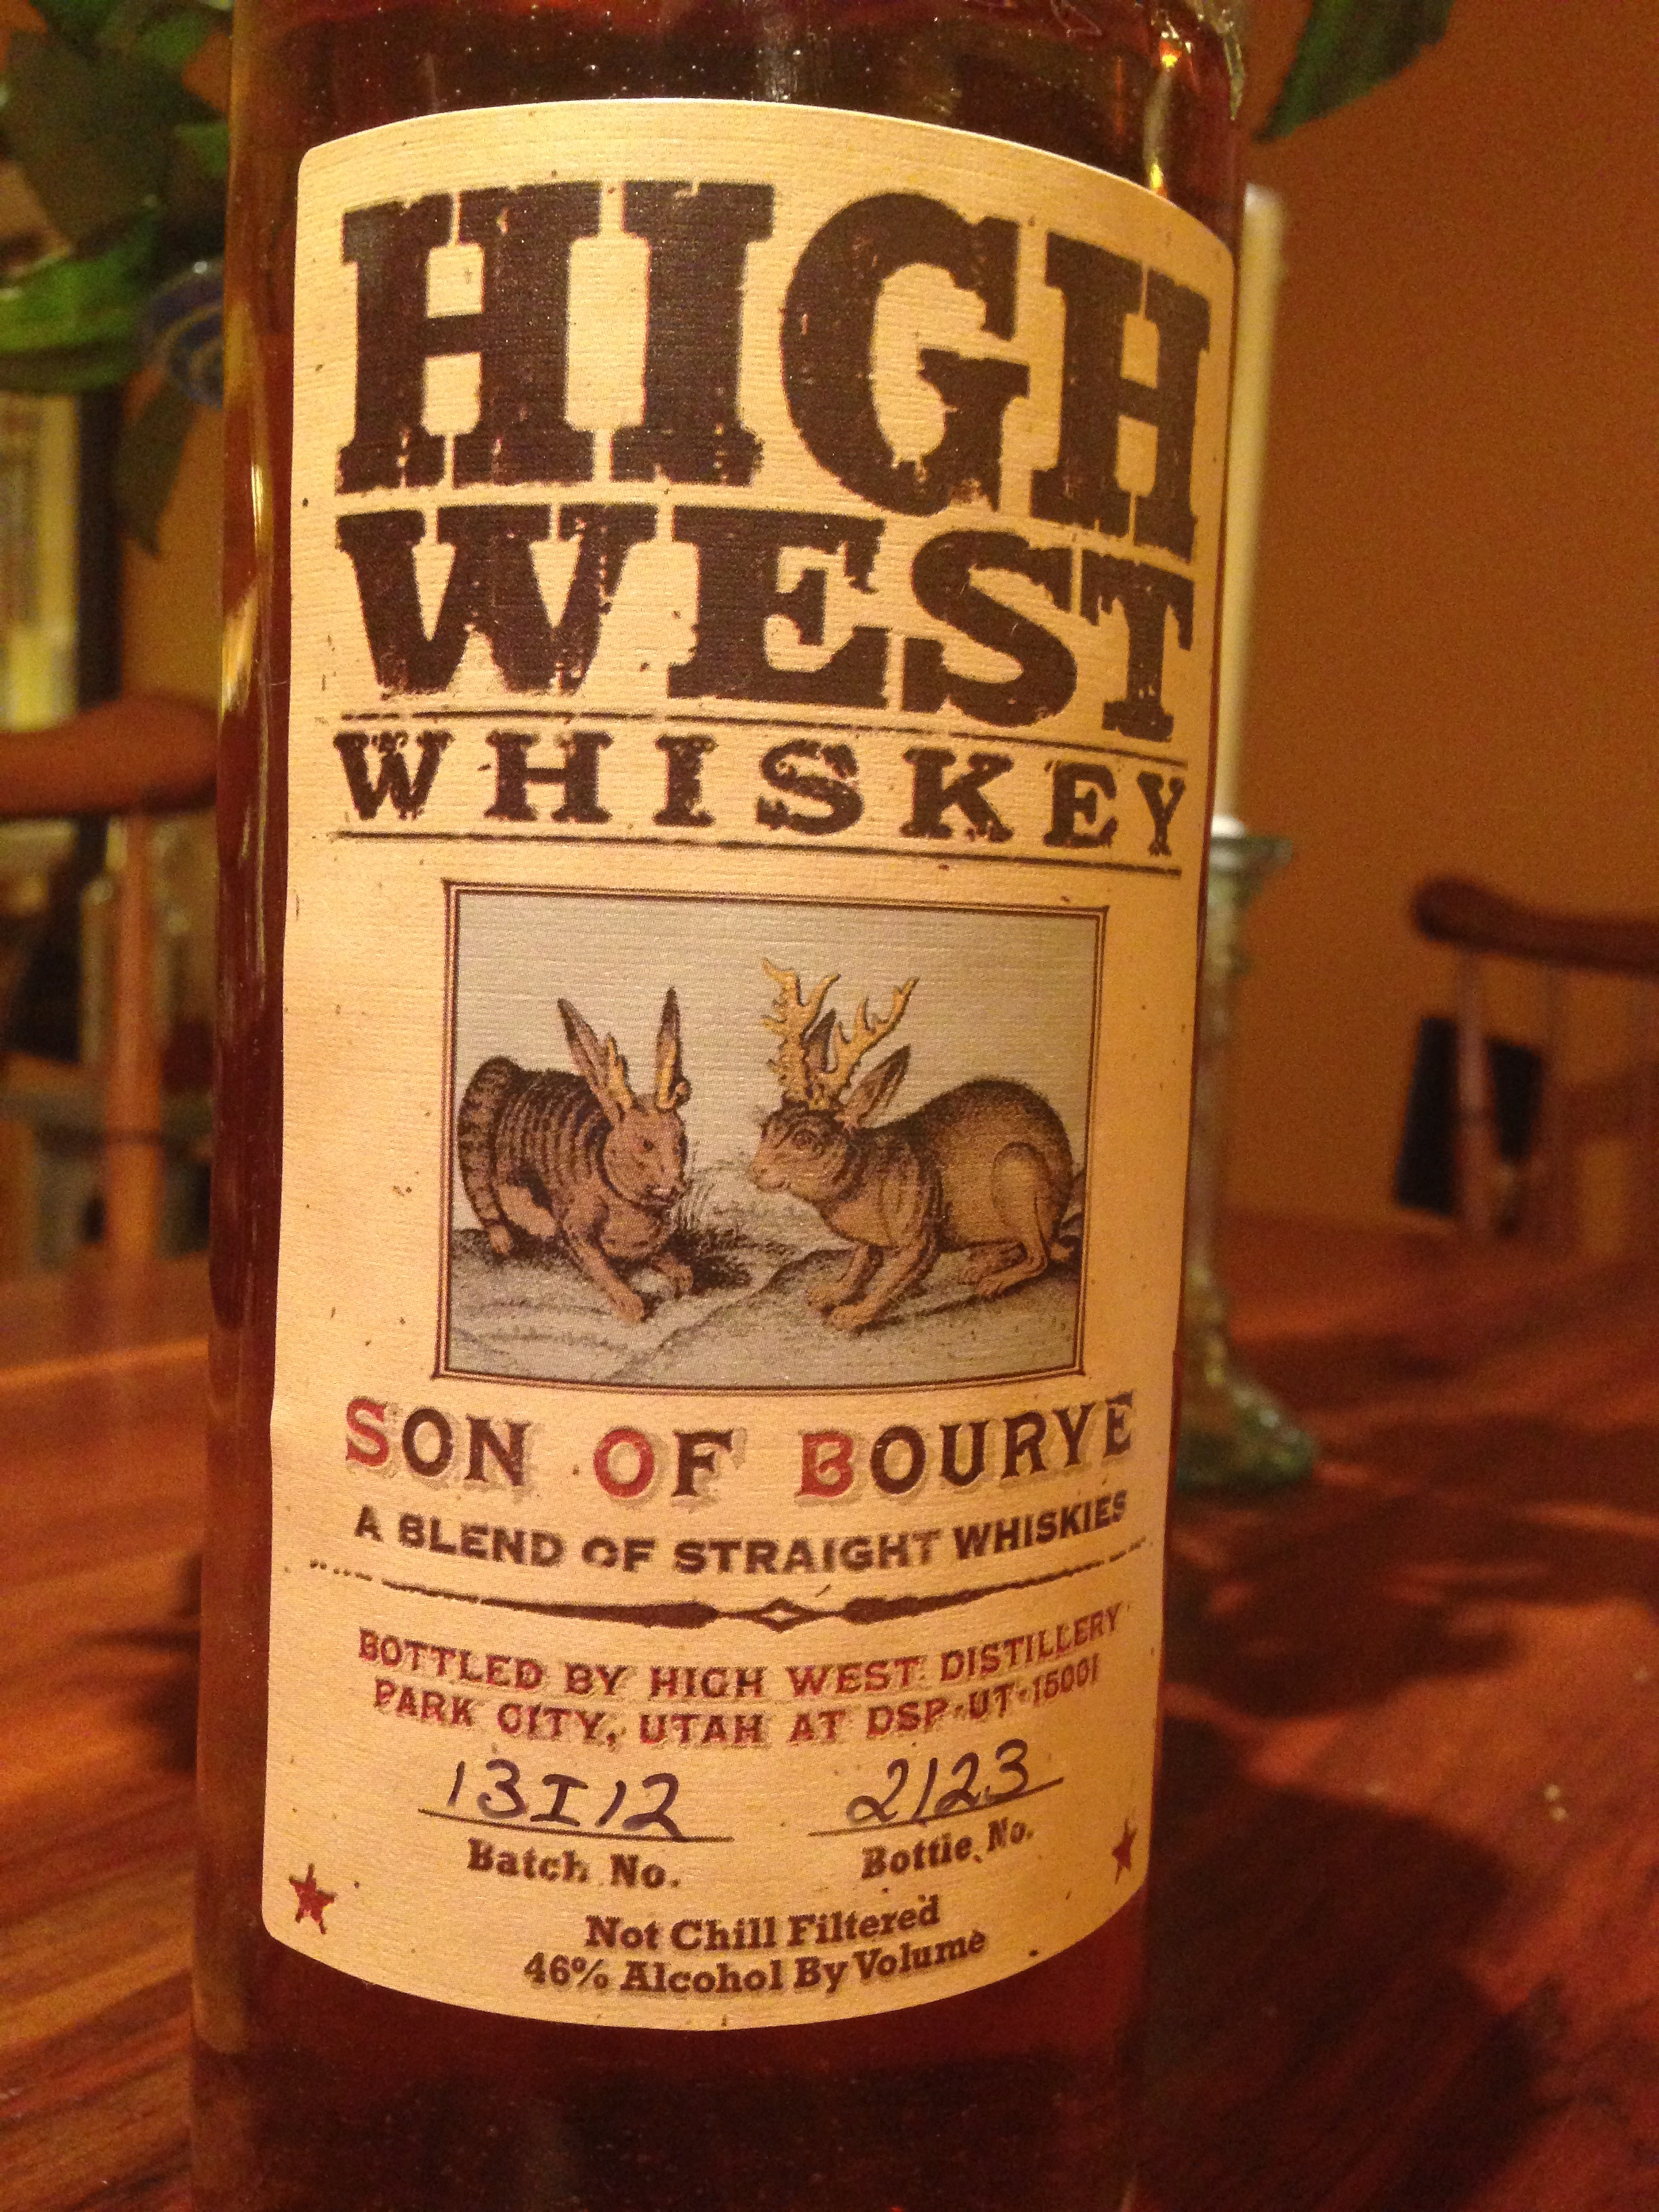 I Used Some Local Park City High West Whiskey To Make This Drink Which  Makes It Extra Special! Son Of Bourye Is An Amazing Blend Of Bourbon And  Rye Whiskey ...